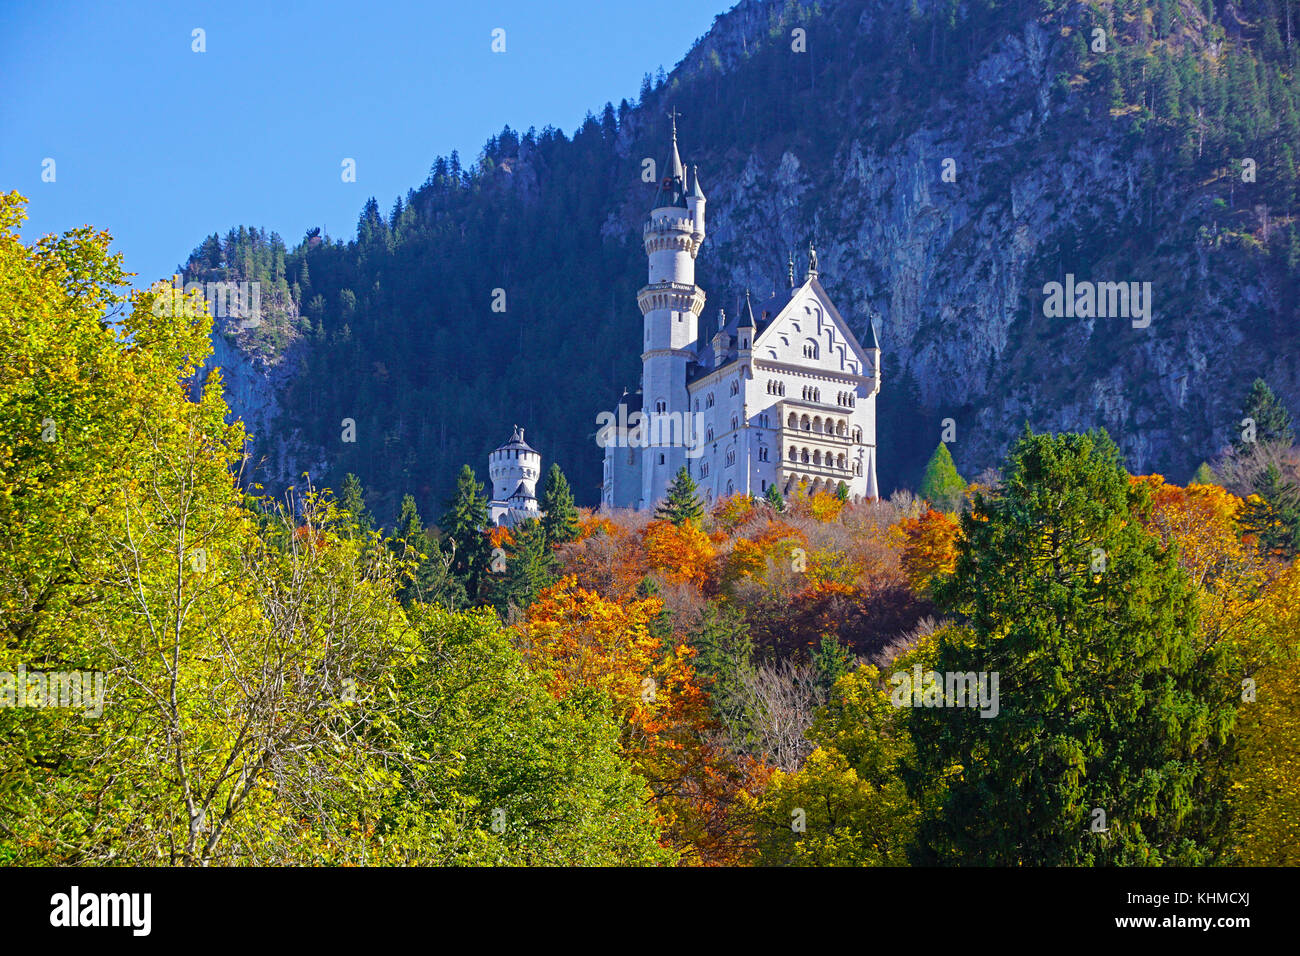 Mad King Ludwig's château de Neuschwanstein Photo Stock